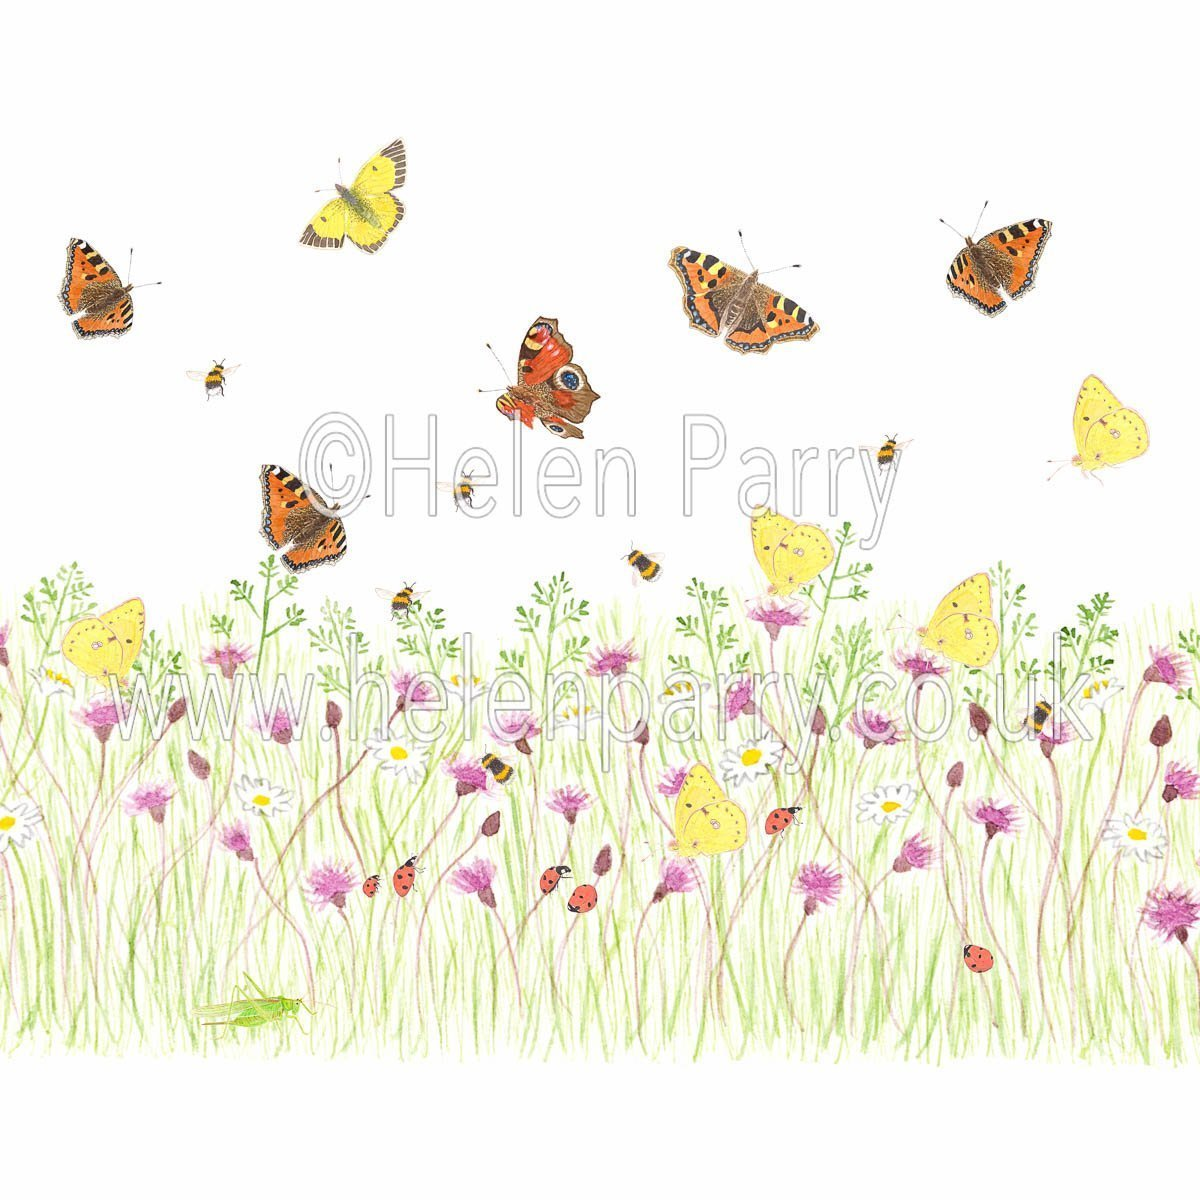 greeting card pink thistle meadow with grasses butterflies ladybirds bees and grasshopper